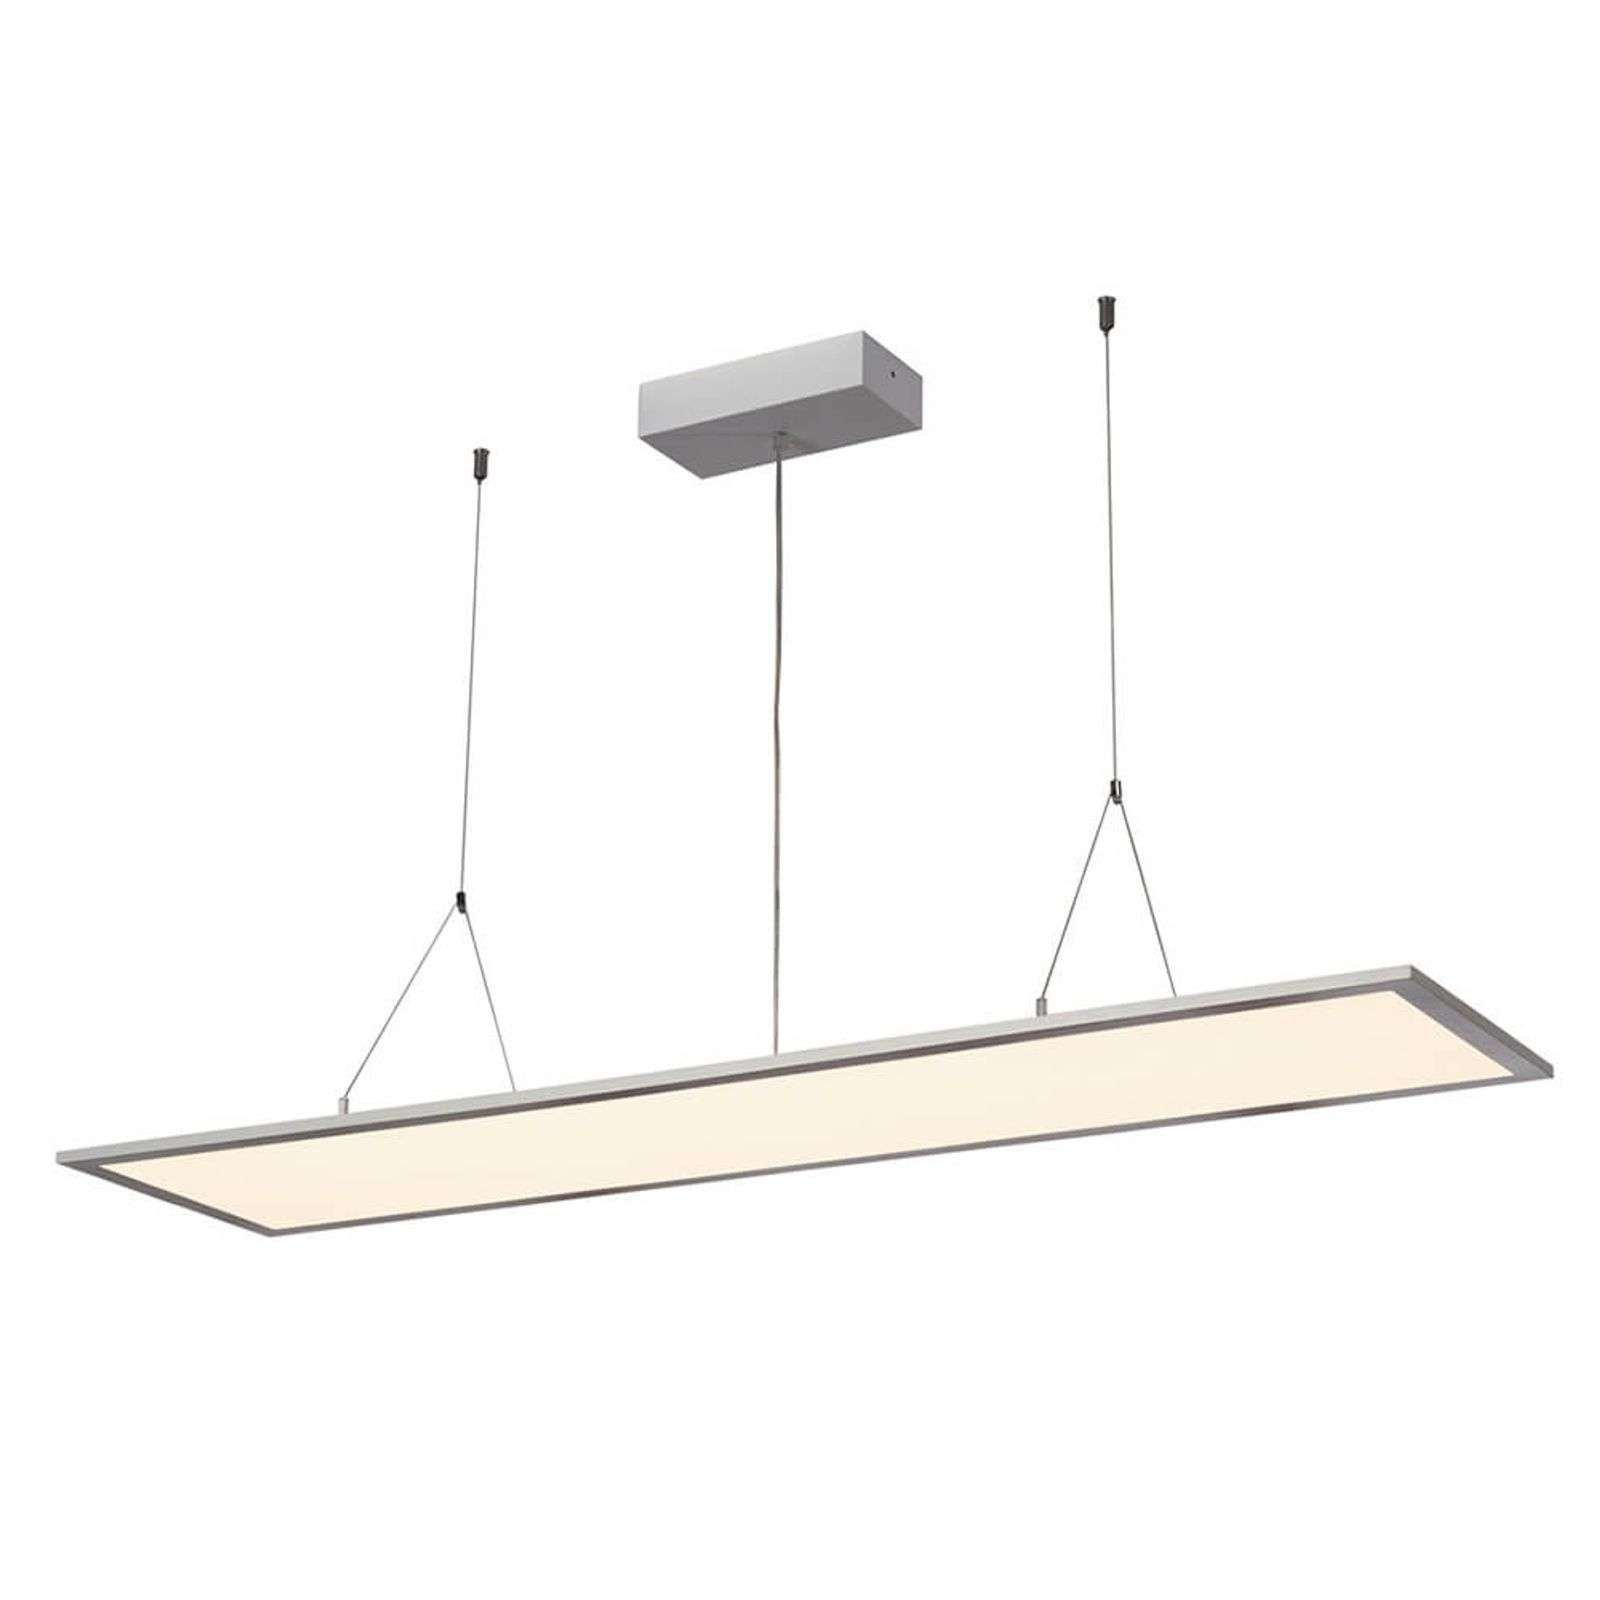 Belle suspension LED I-Pendant Pro